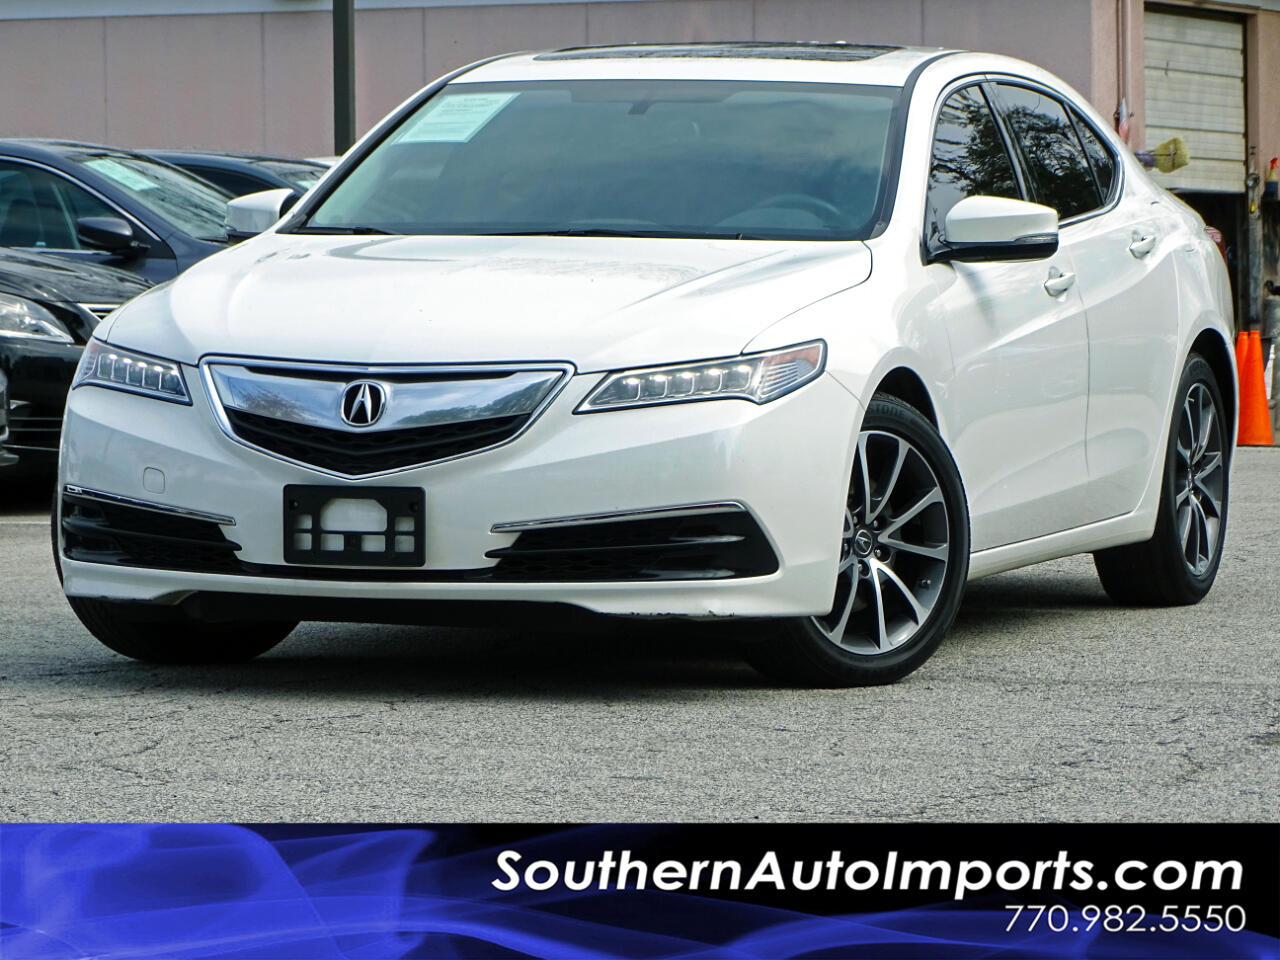 2016 Acura TLX V6 w/Back Up Camera 1owner